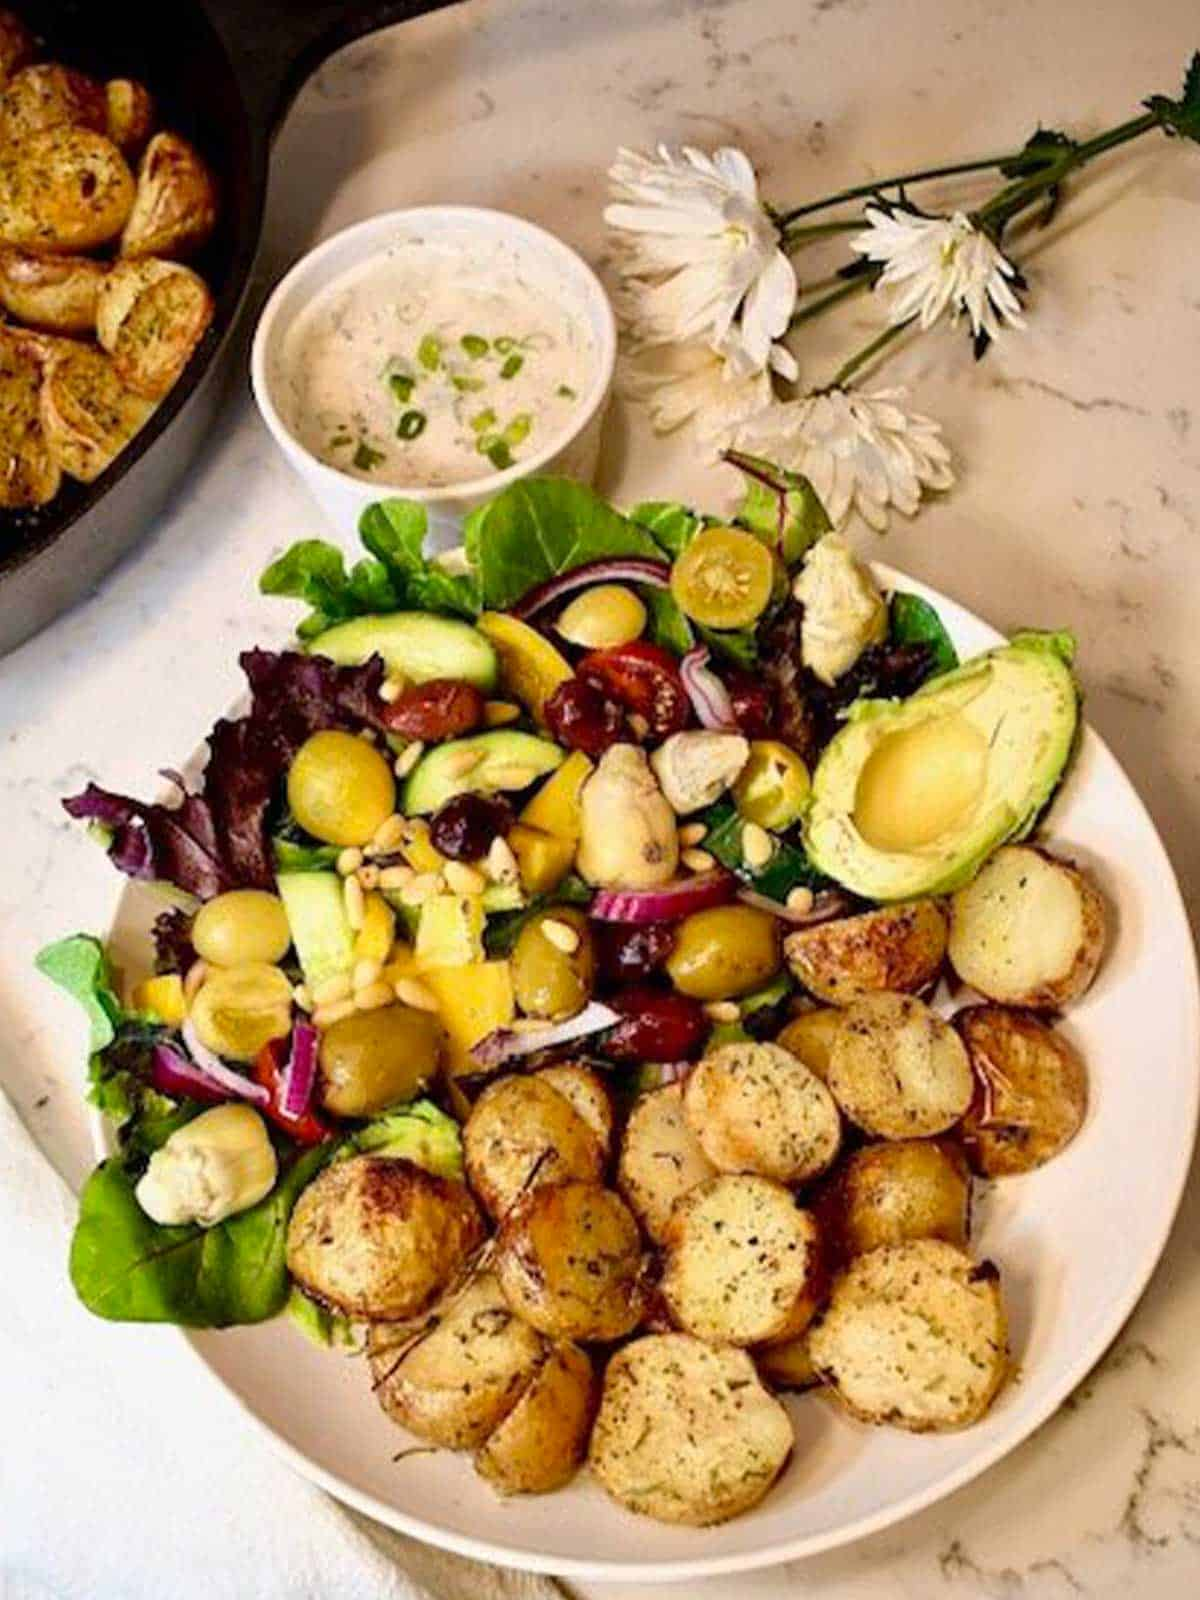 Plate filled with potatoes and veggie salad. Above is a sauce and pan of potatoes.